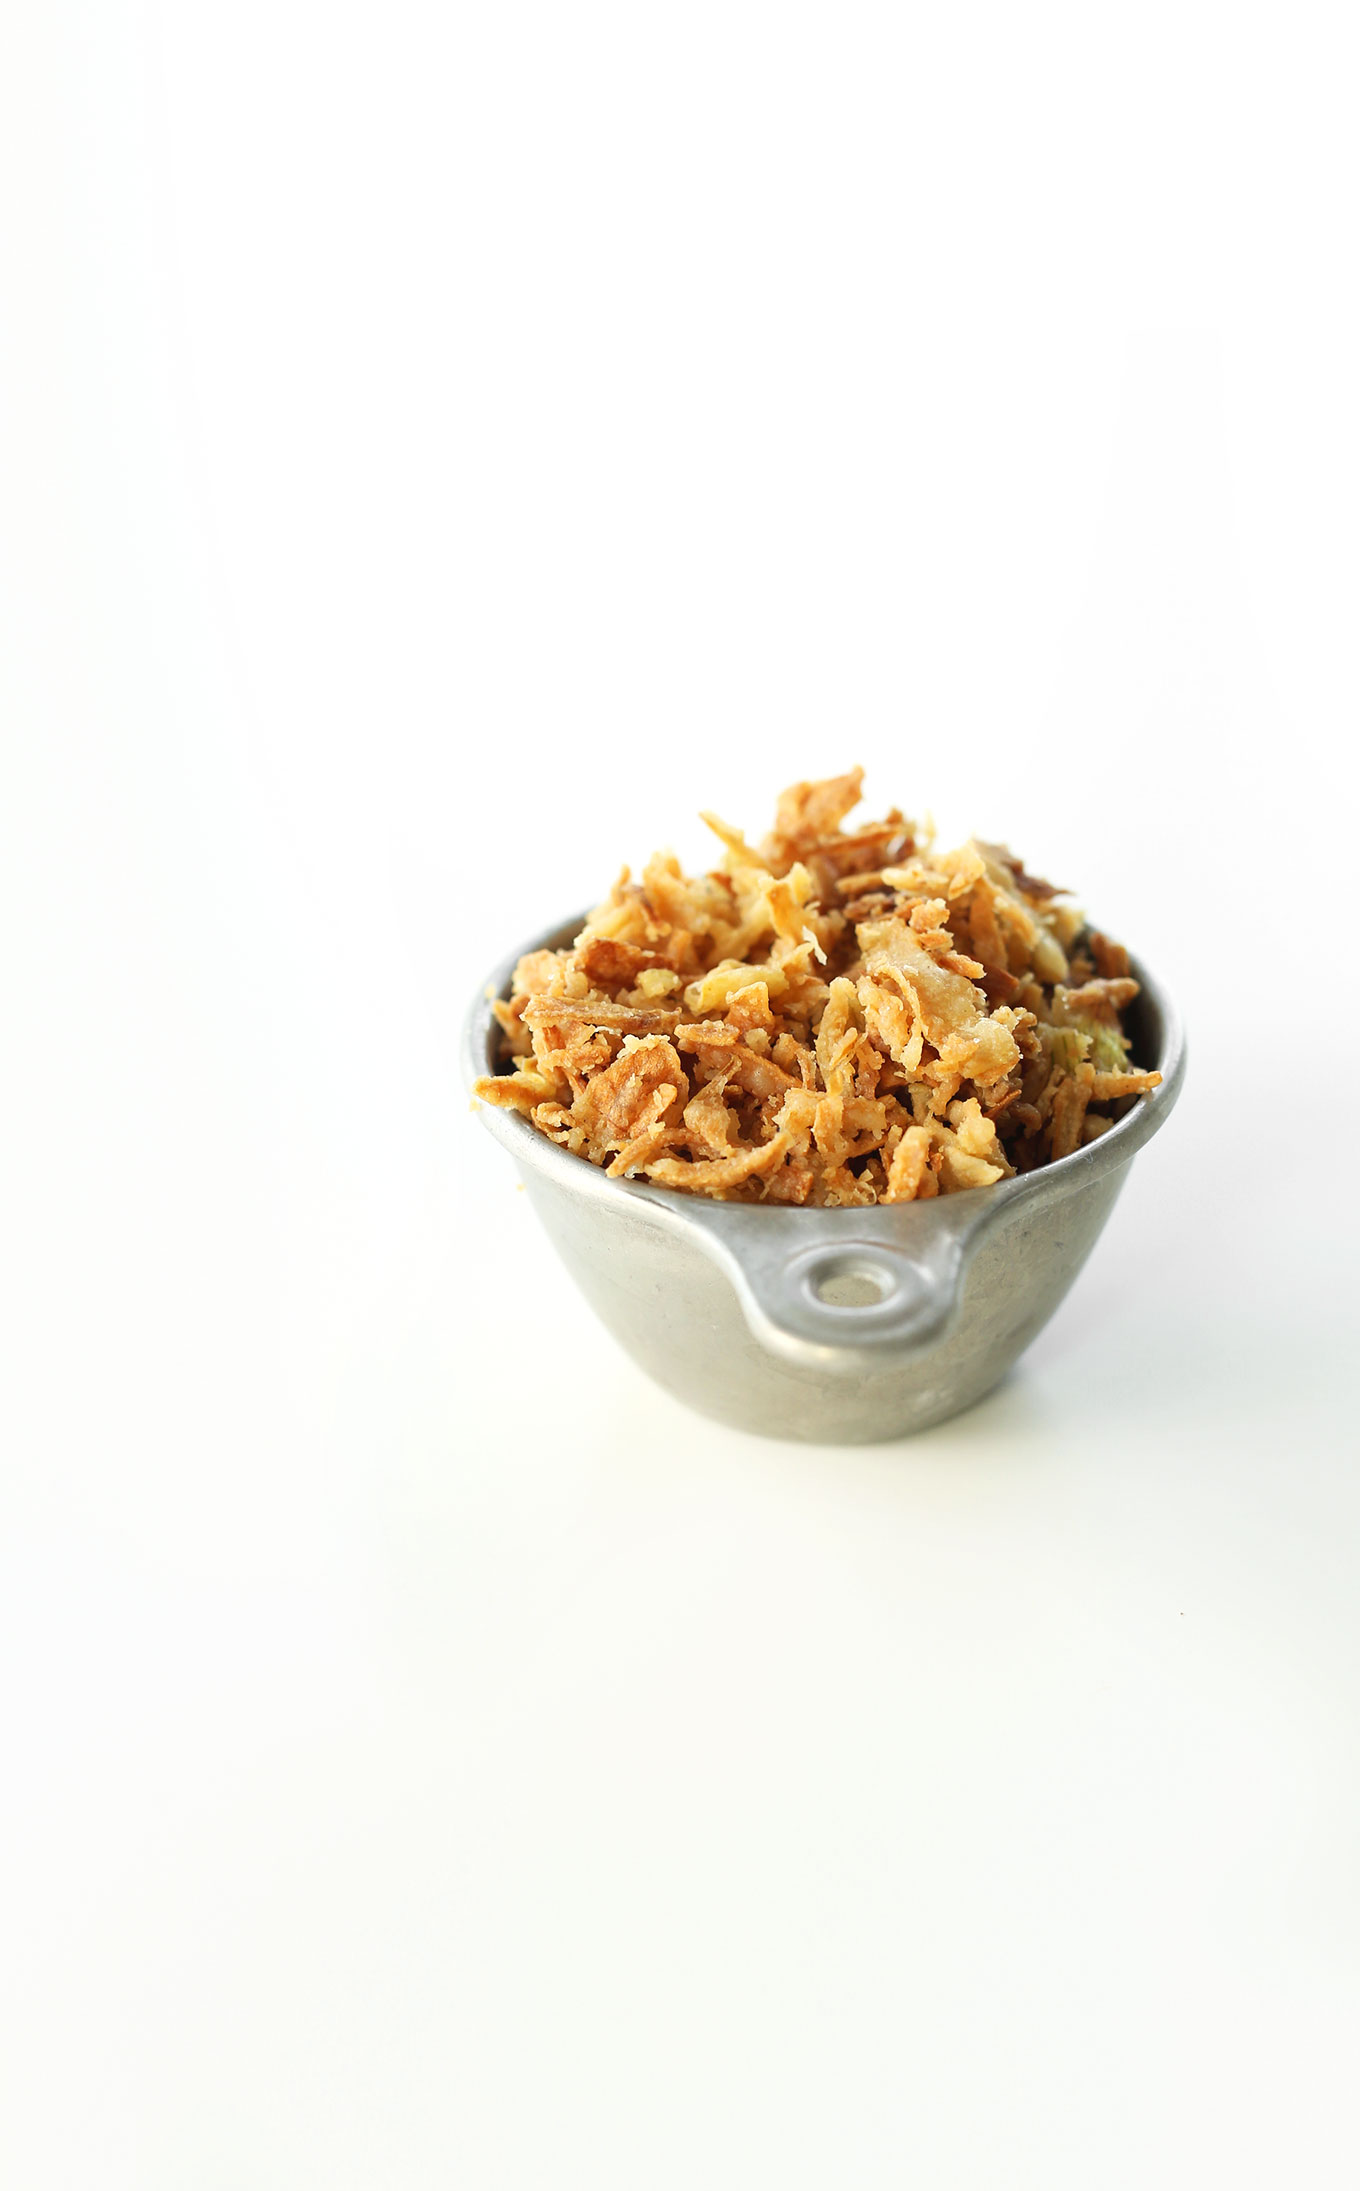 Vegan Crispy Fried Onions for making a homemade Green Bean Casserole